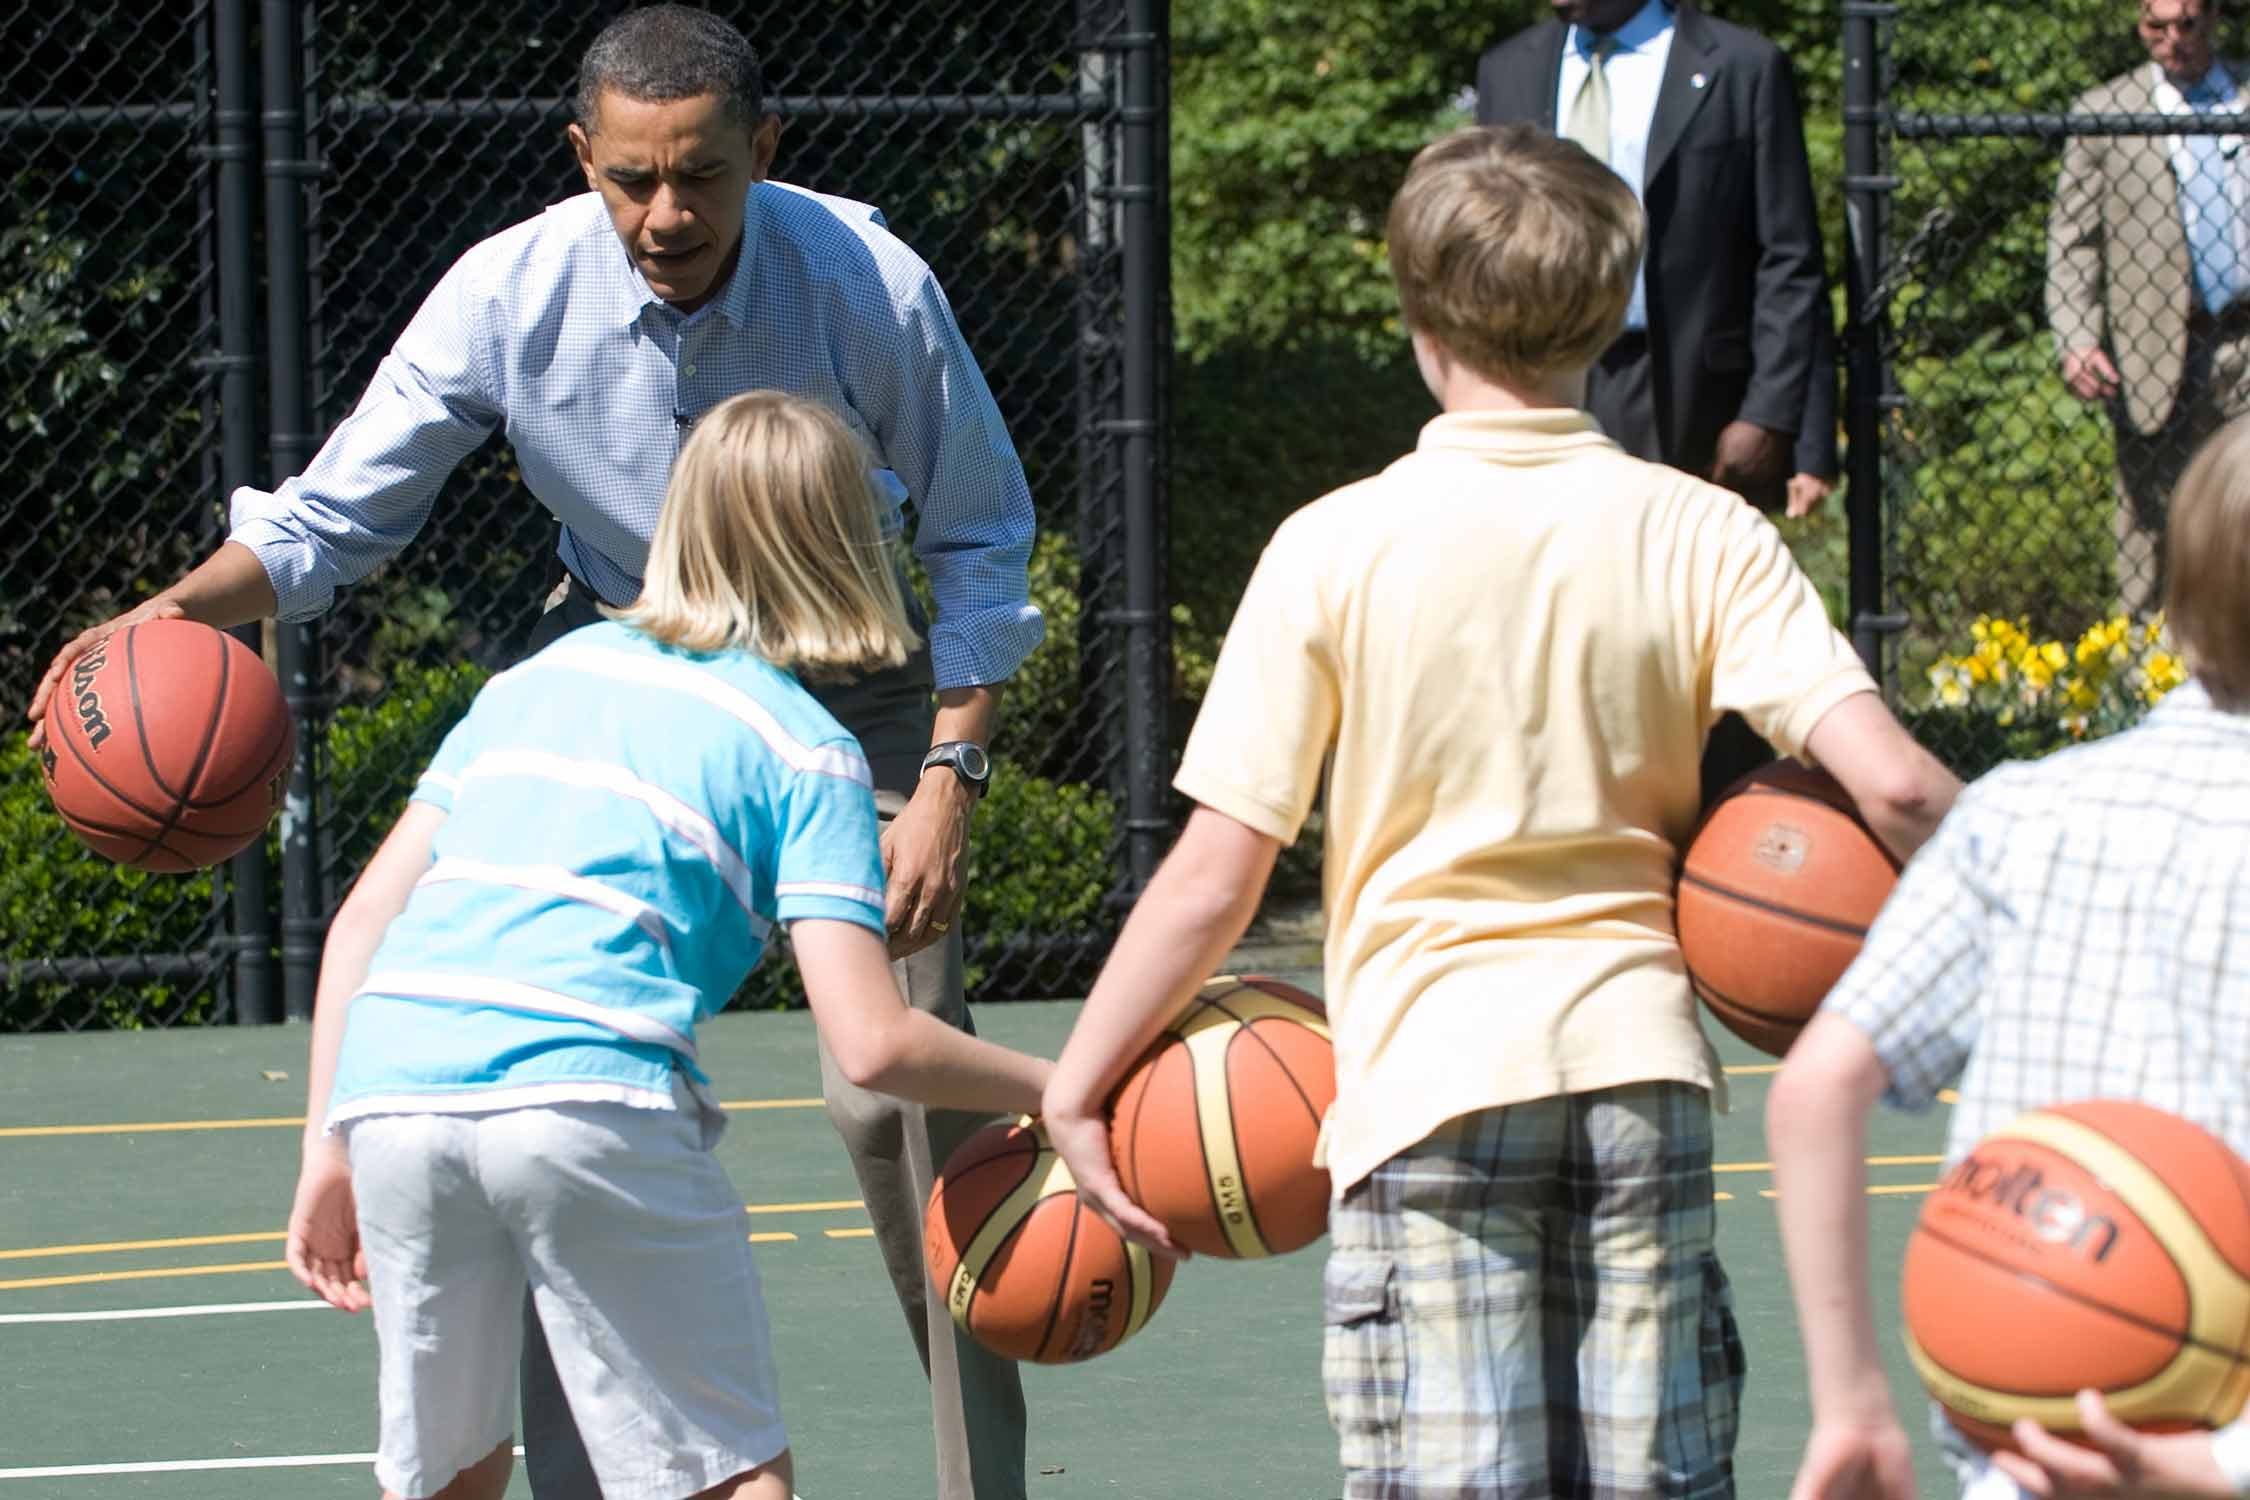 President Barack Obama shows off his dribbling skills during the White House's annual Easter Egg Roll in 2010.